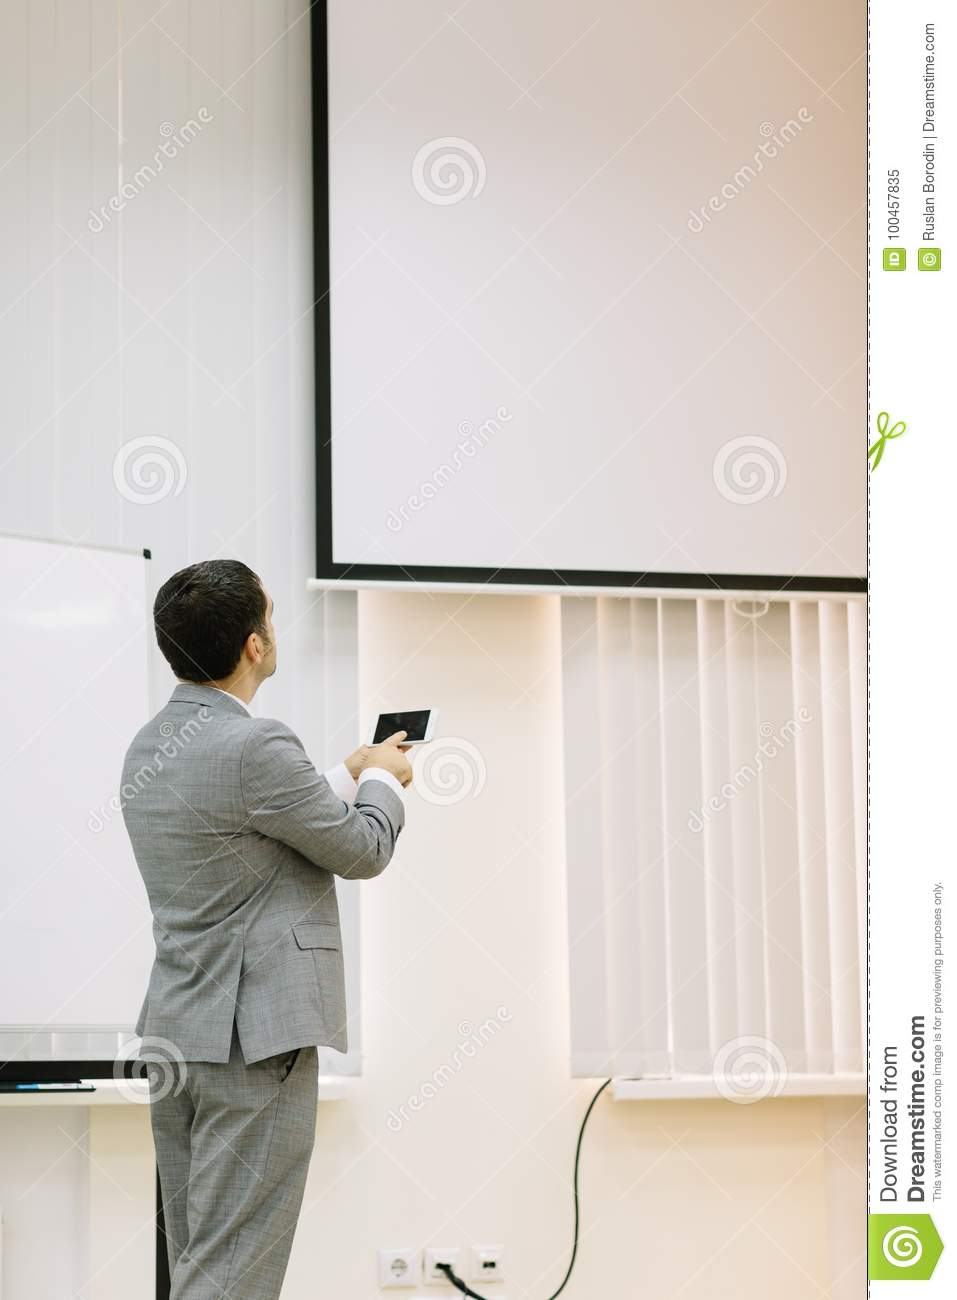 Business man showing presentation on a multimedia projector background. Technology concept. Copy space.